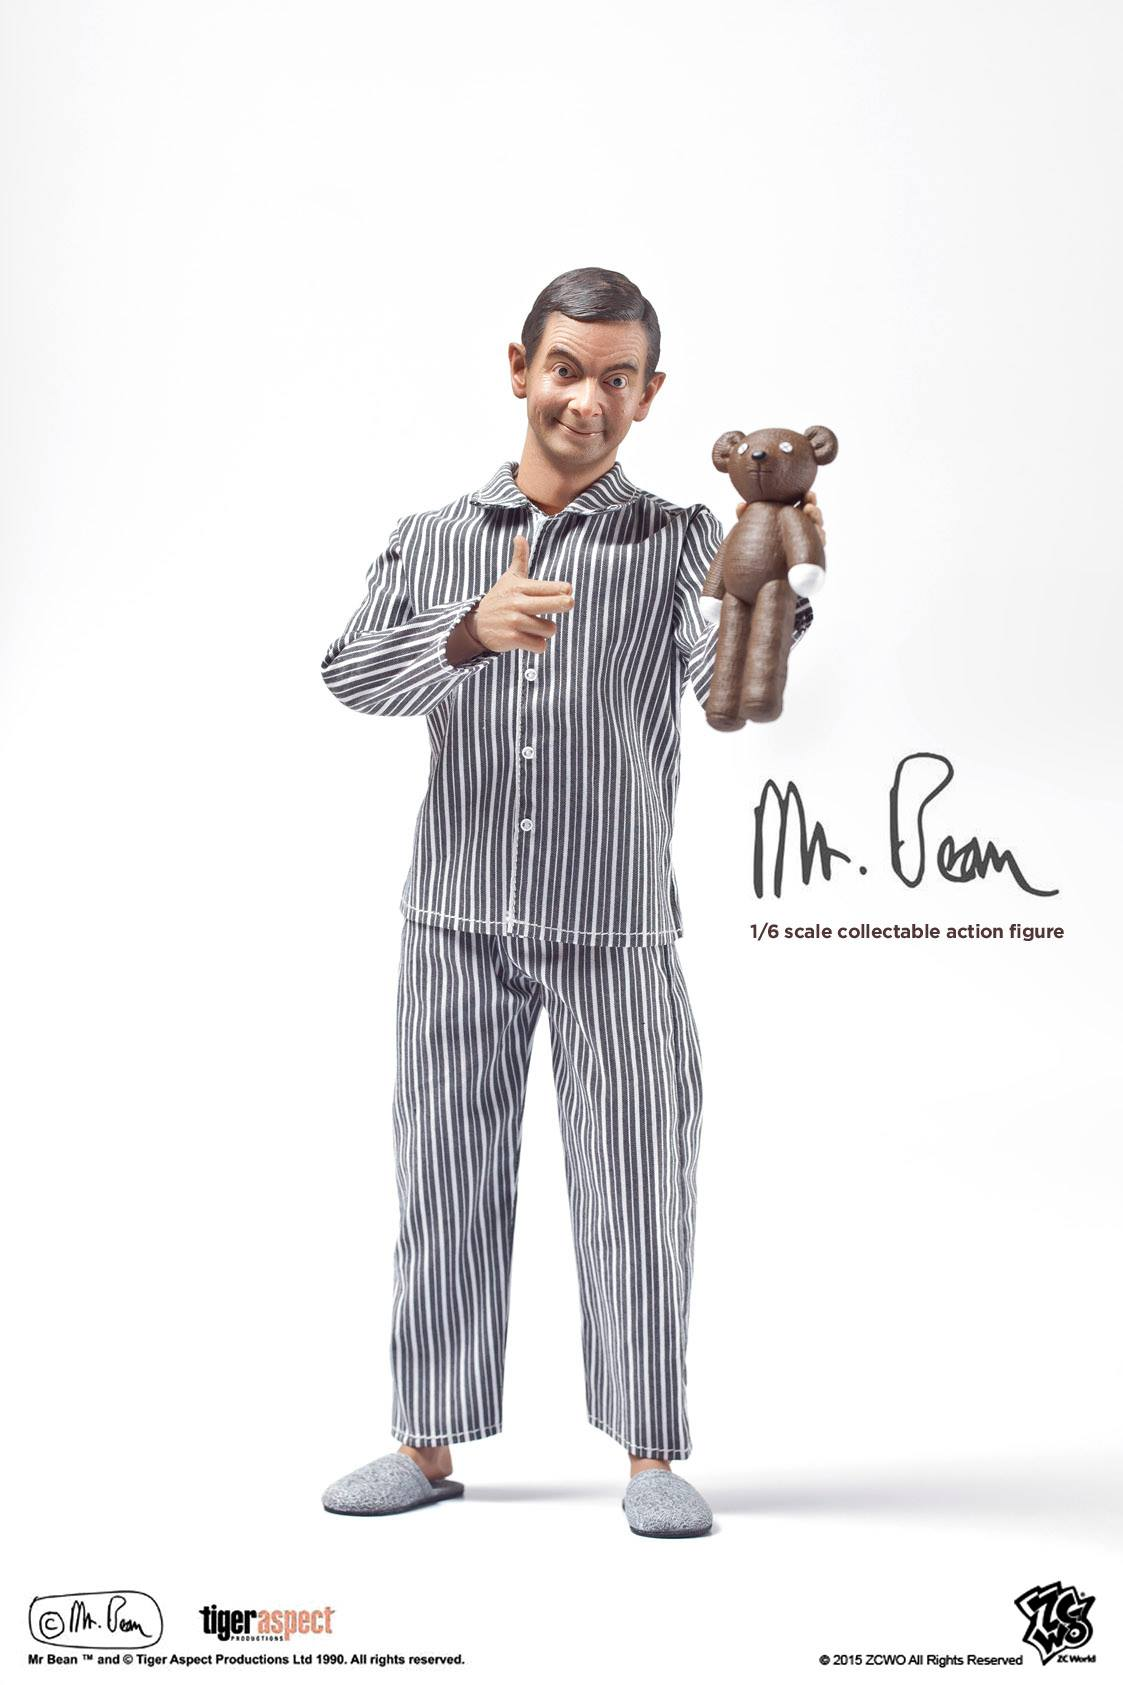 [ZCWO] Mr. Bean - 1/6 scale 150248m16fshjyps111y1w